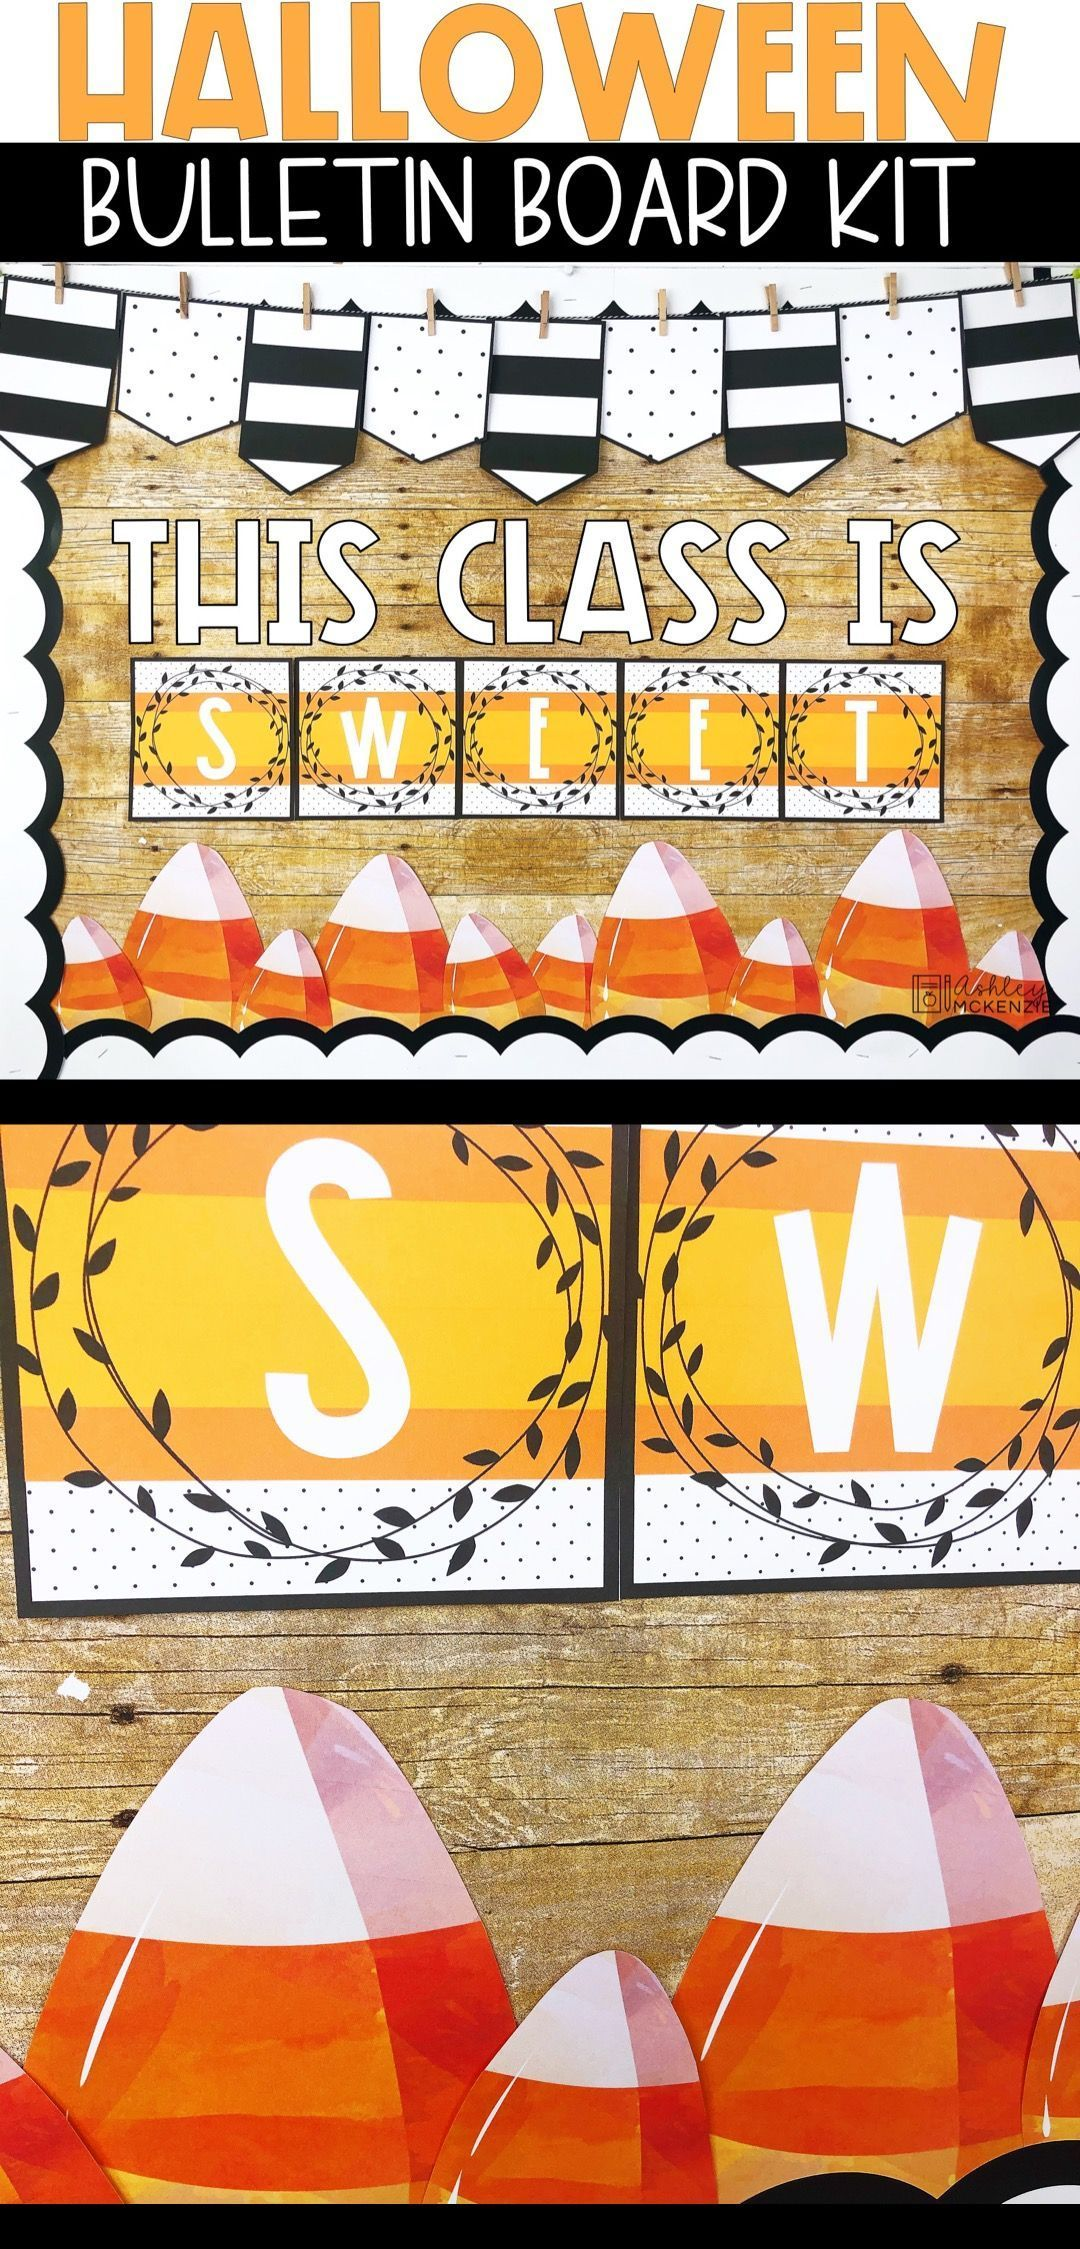 Candy Corn Halloween Bulletin Board #halloweenbulletinboards If you are looking for a fun Halloween Bulletin board idea for your classroom this is it! The Candy Corn Halloween Bulletin Board kit is so easy to put together and will make your board pop this October! #octoberbulletinboards Candy Corn Halloween Bulletin Board #halloweenbulletinboards If you are looking for a fun Halloween Bulletin board idea for your classroom this is it! The Candy Corn Halloween Bulletin Board kit is so easy to put #octoberbulletinboards